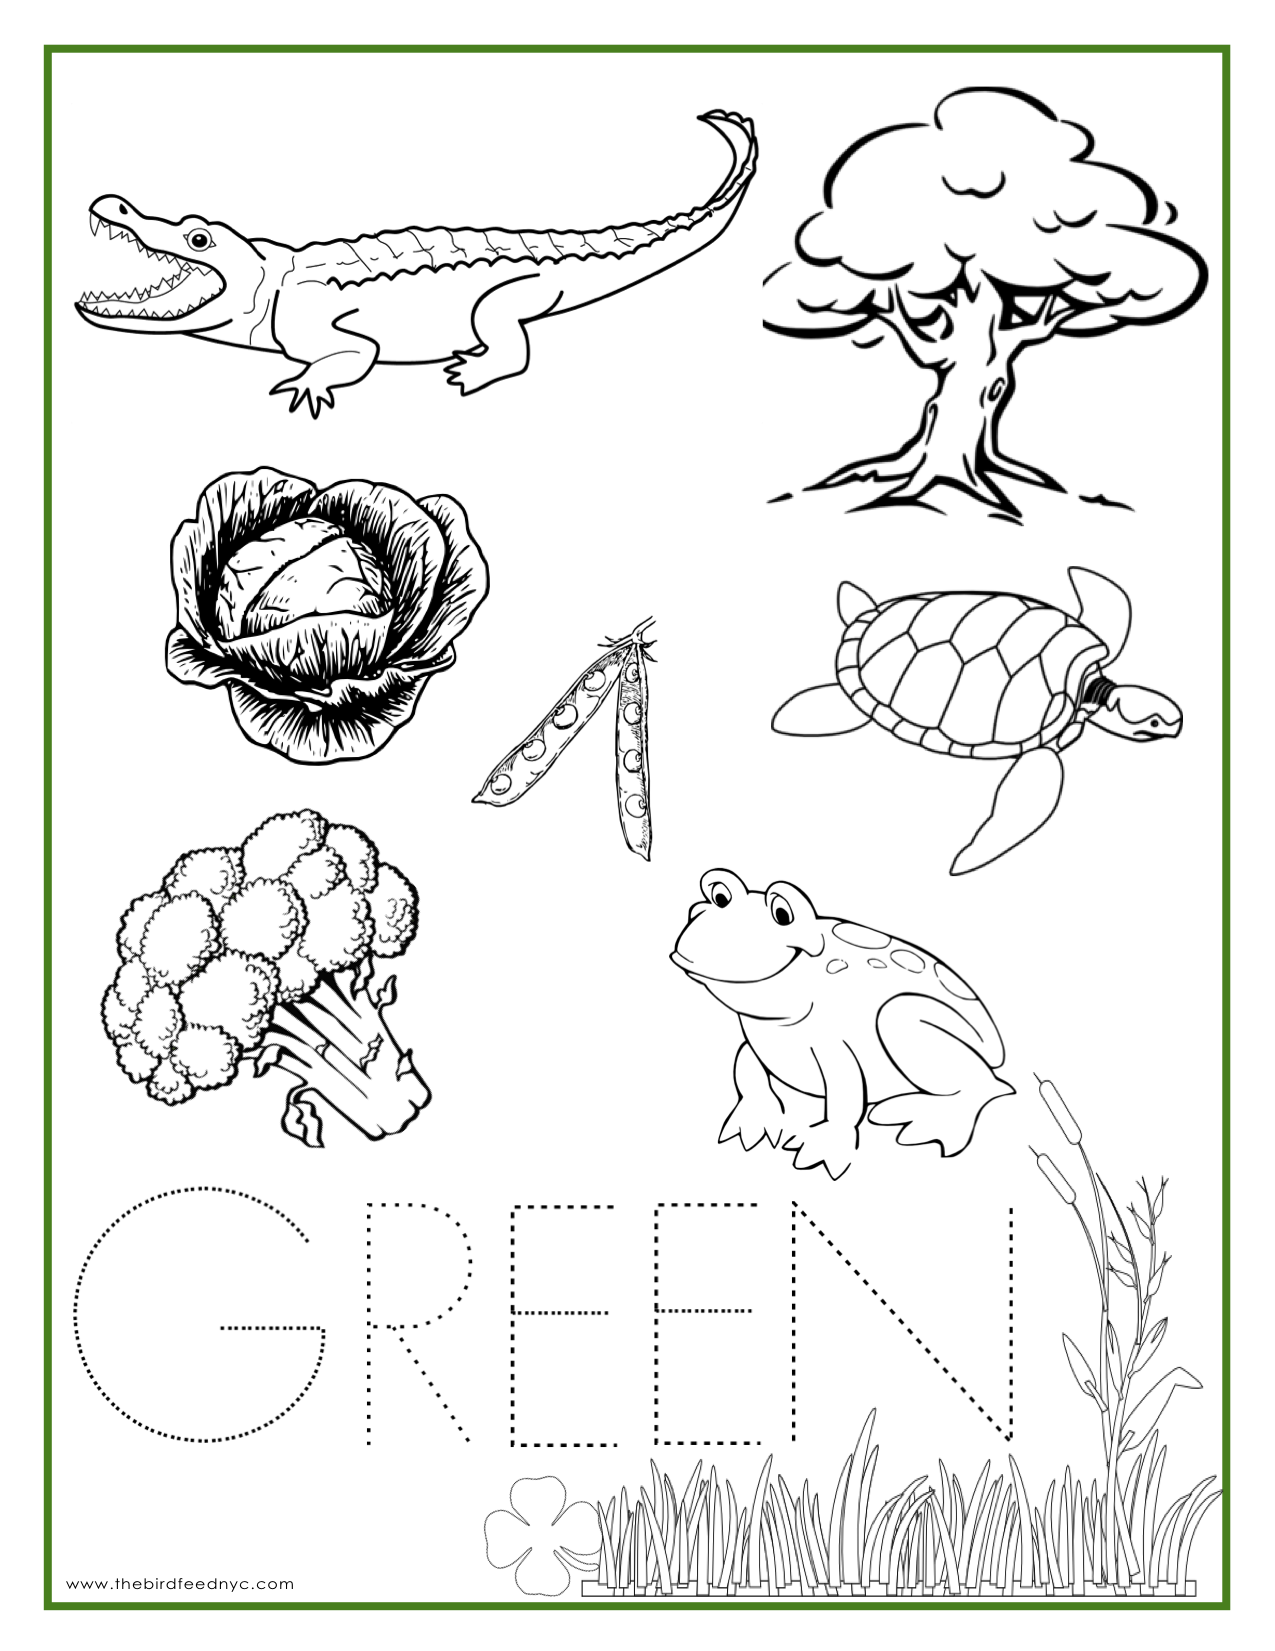 Colors for learning free printable learning colors coloring pages are - Green Color Activity Sheet Printable Coloring Sheetspreschool Colorspreschool Craftslearning